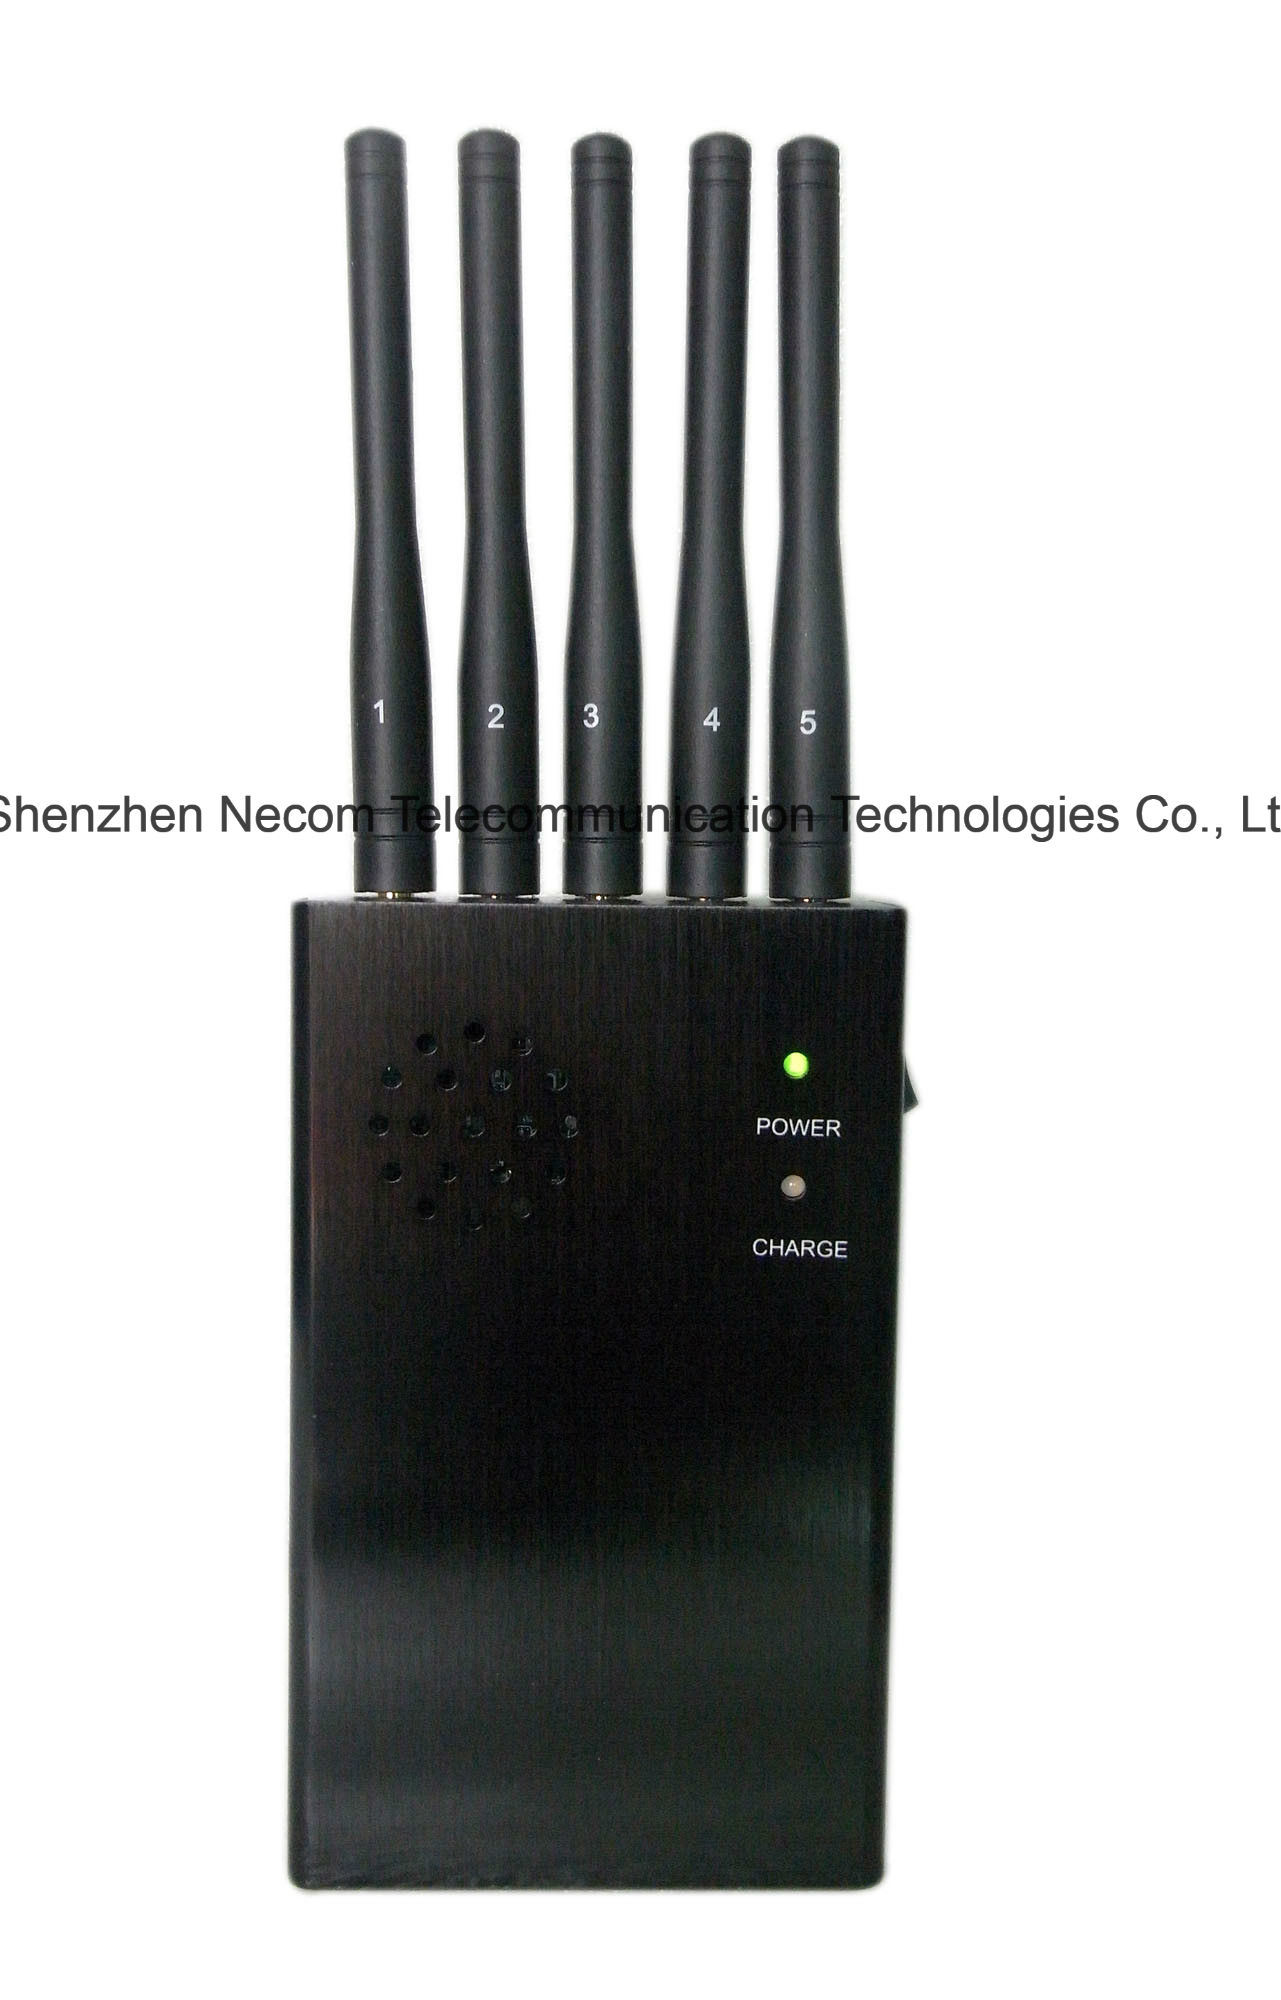 iphone wifi jammer legal - China Wireless Cell Phone Signal Jammer CDMA GSM Dcs Phs 3G, Five Antenna, Wireless GPS & WiFi Cell Phone 5 Antenna Portable Jammer - China 5 Band Signal Blockers, Five Antennas Jammers